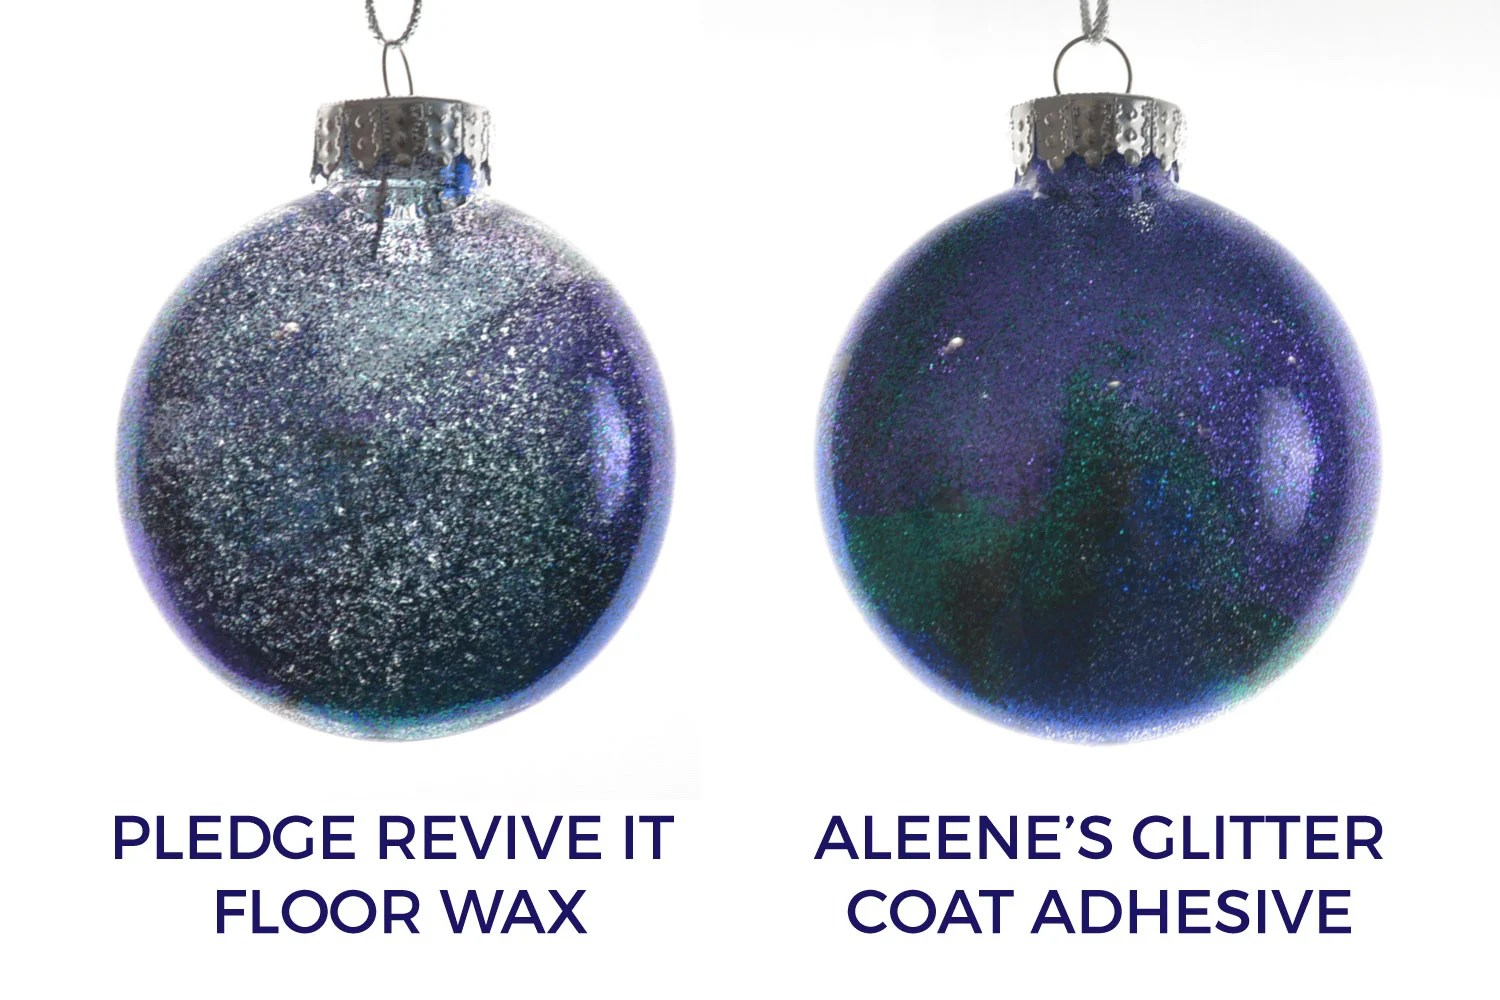 Two ornaments showing the different opacity of Pledge and glitter adhesive